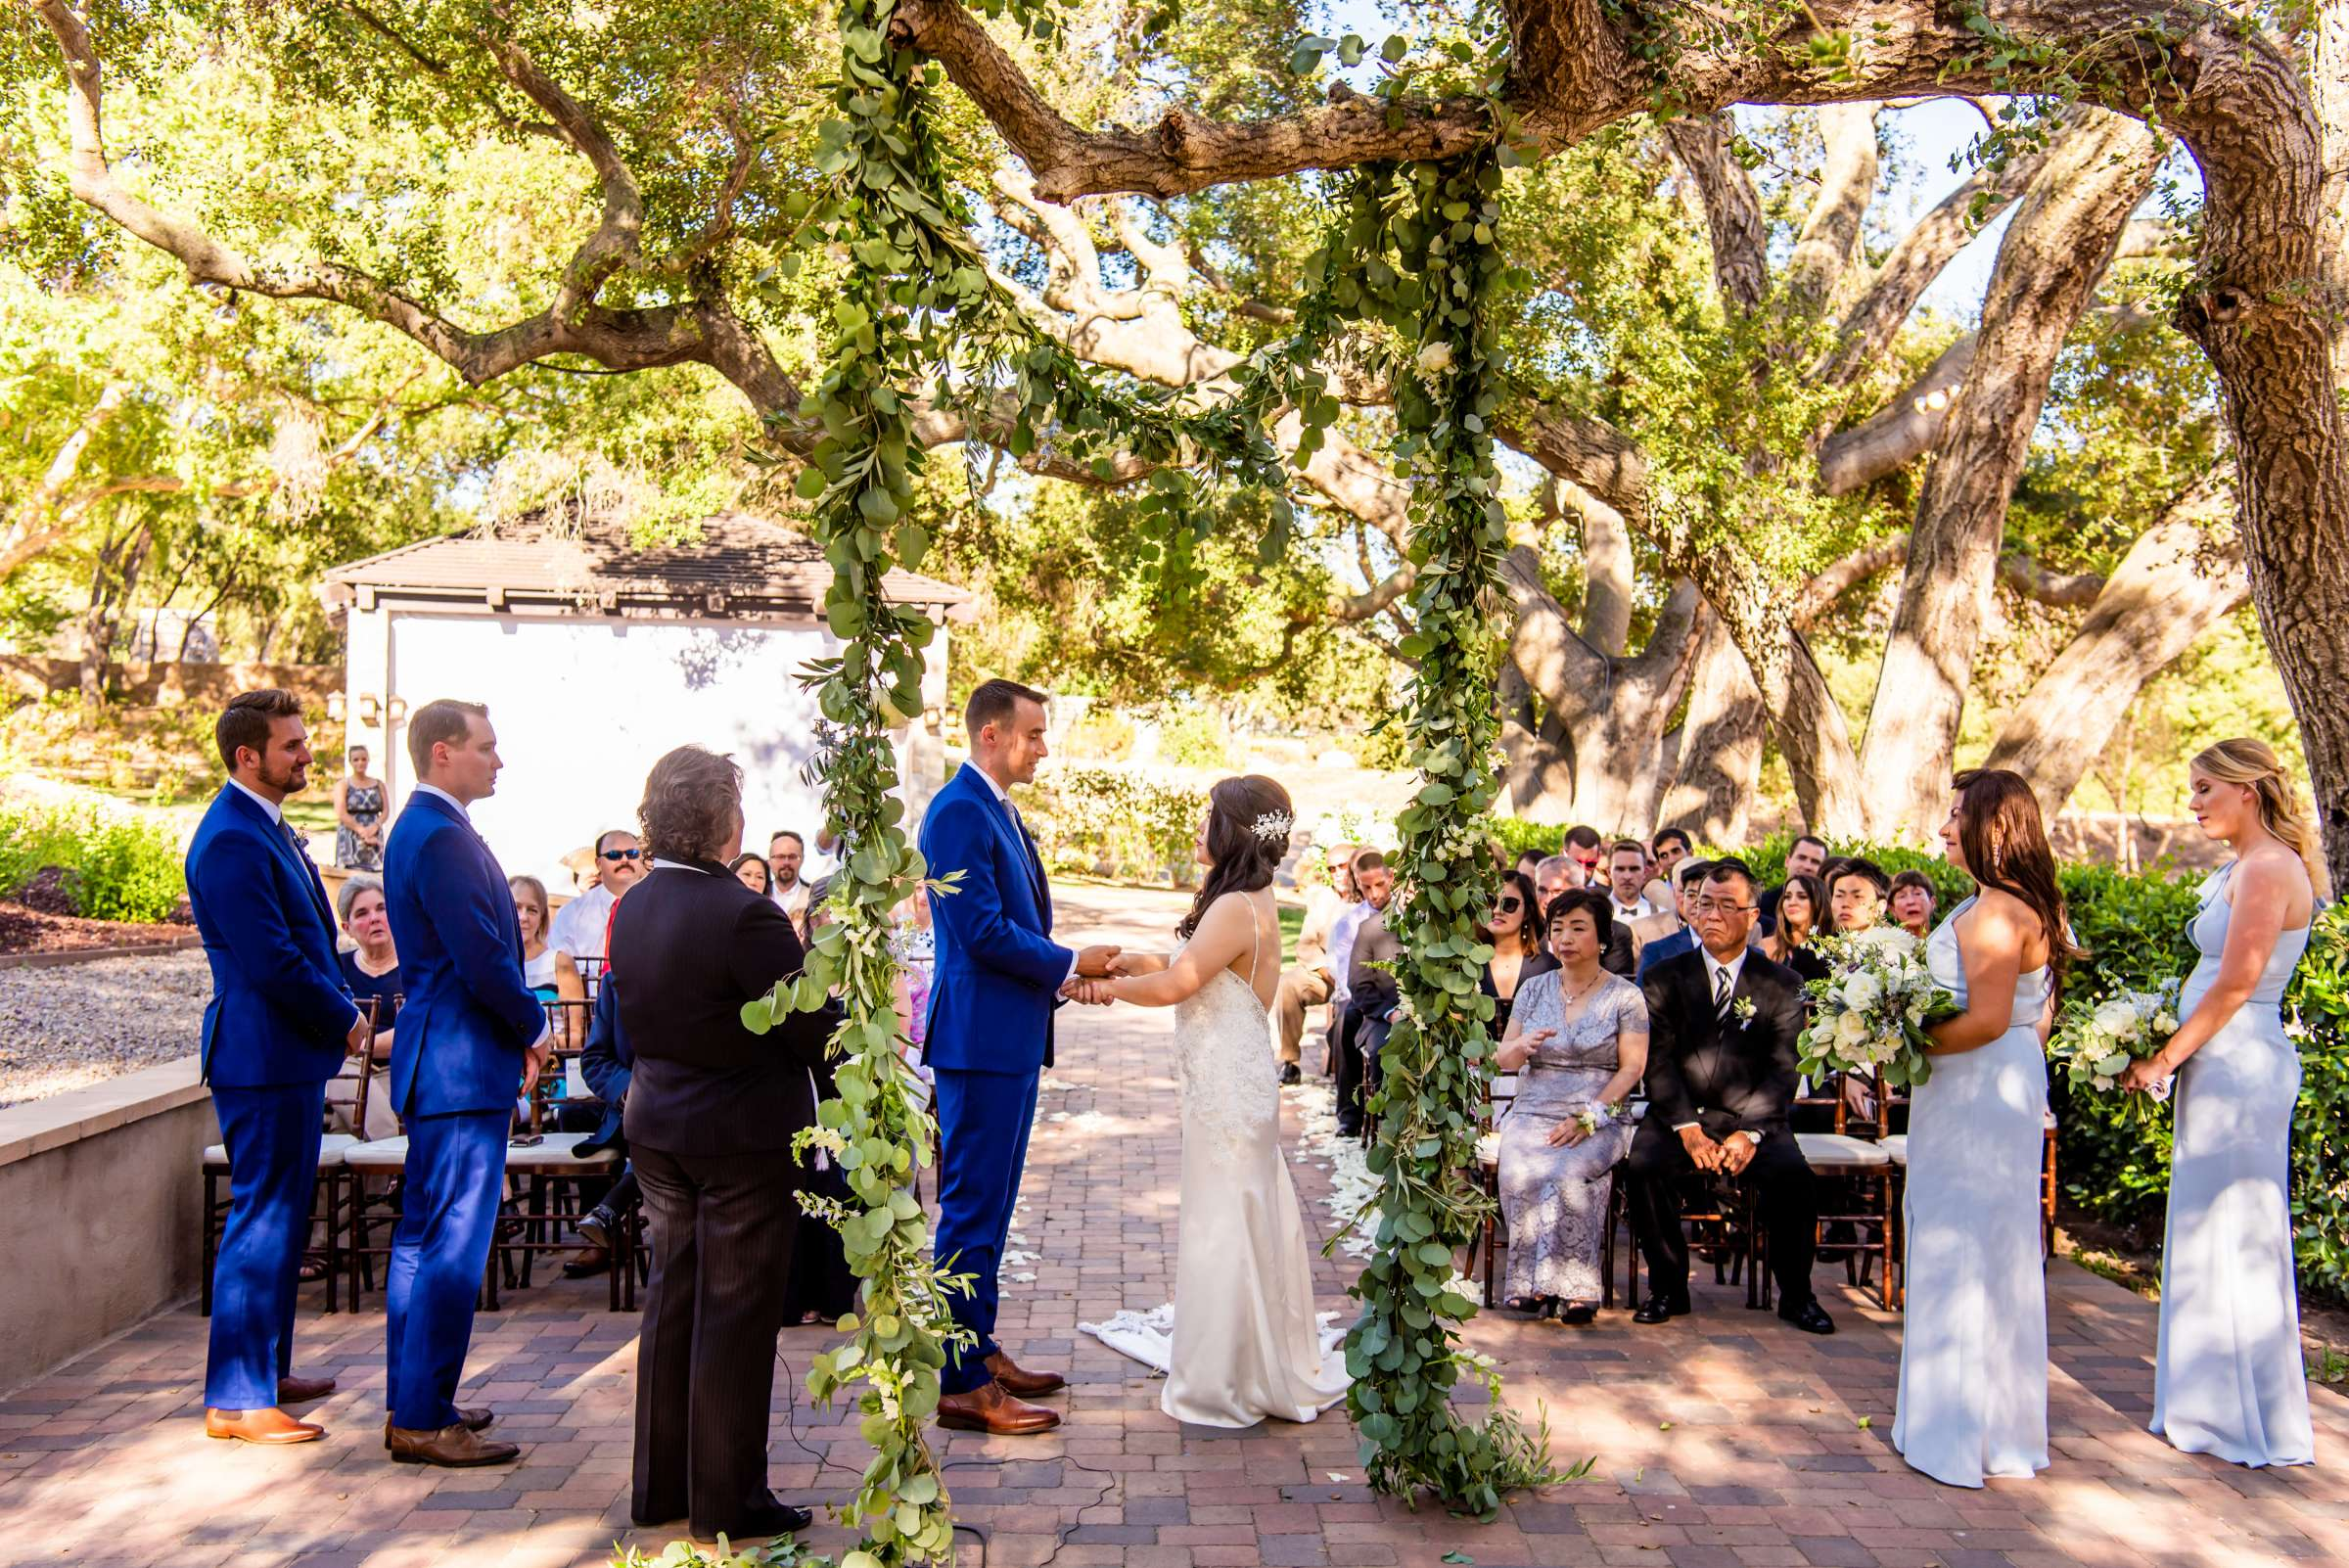 Mt Woodson Castle Wedding coordinated by I Do Weddings, Aya and Jared Wedding Photo #486945 by True Photography